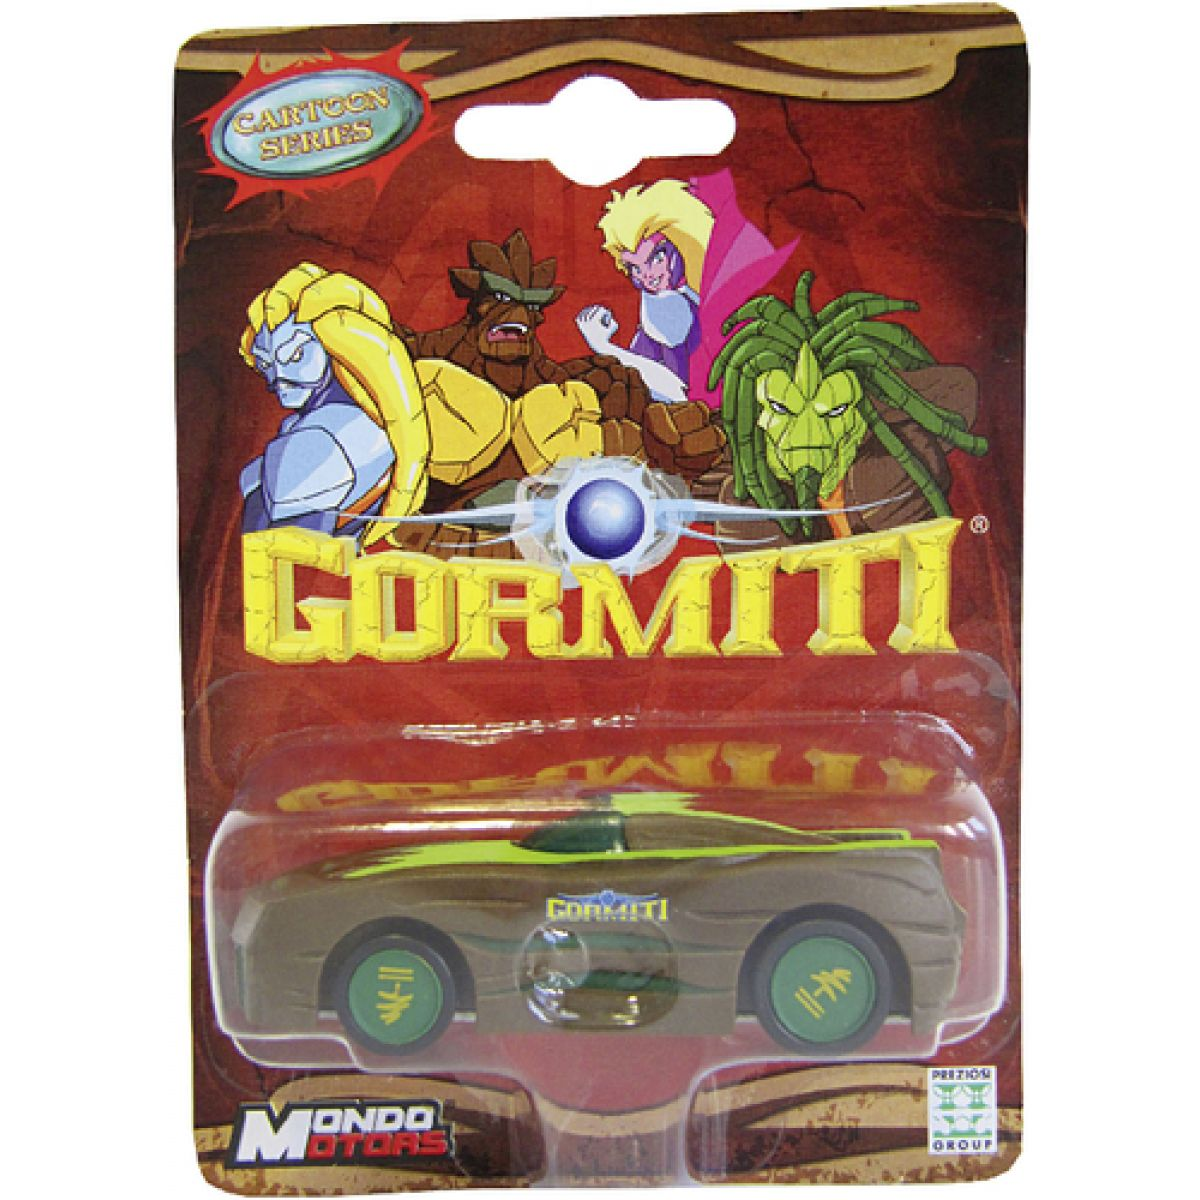 Gormiti Cartoon Auto 1:64 1 pack